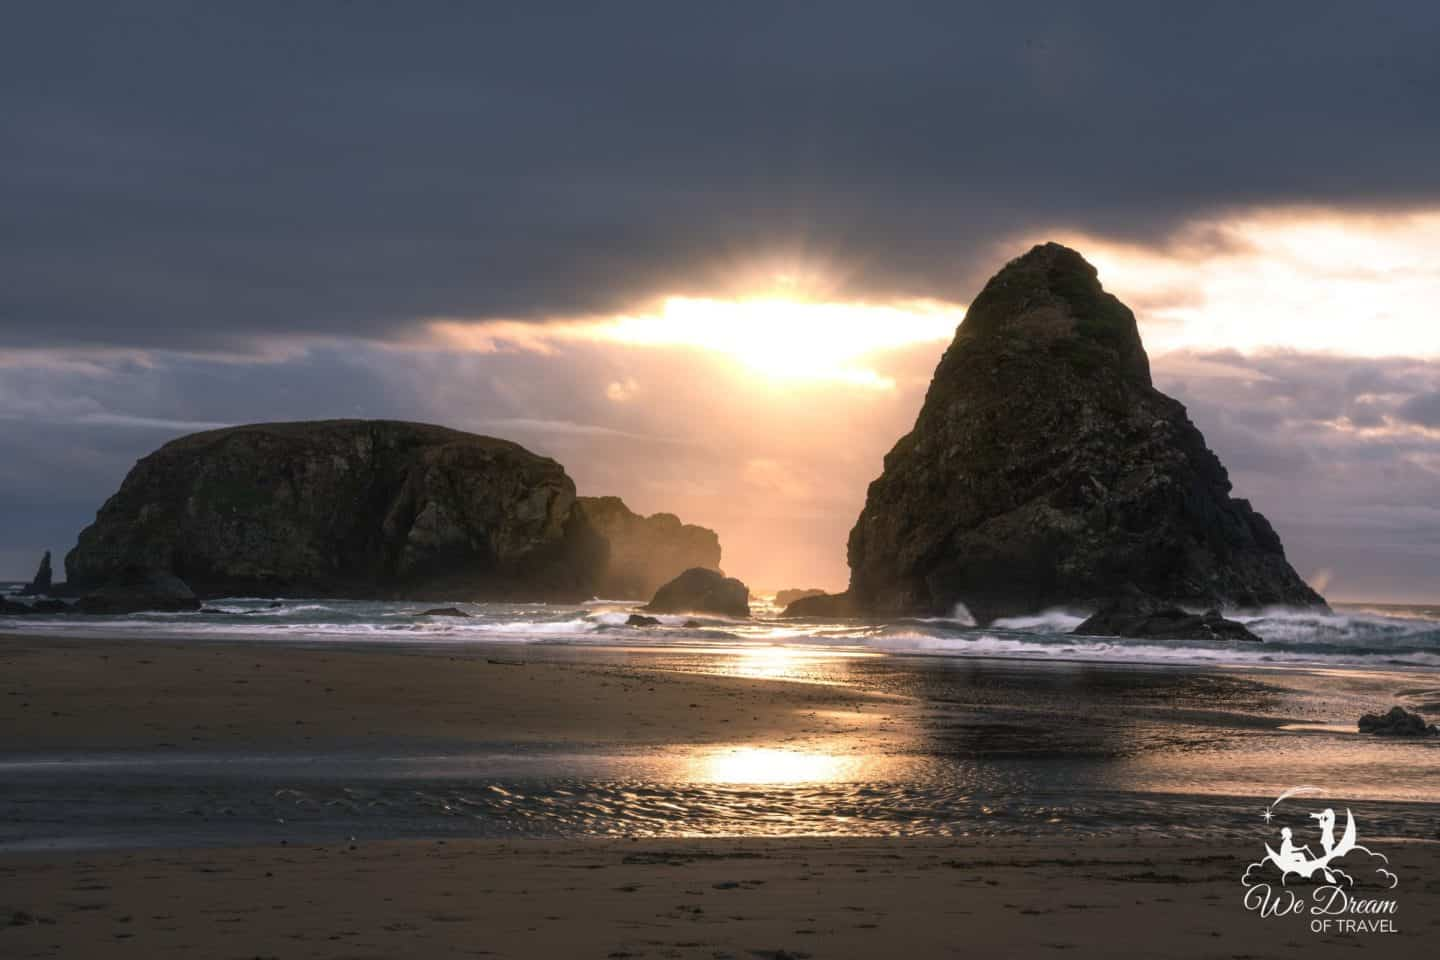 Whaleshead Beach Golden hour seascape photography